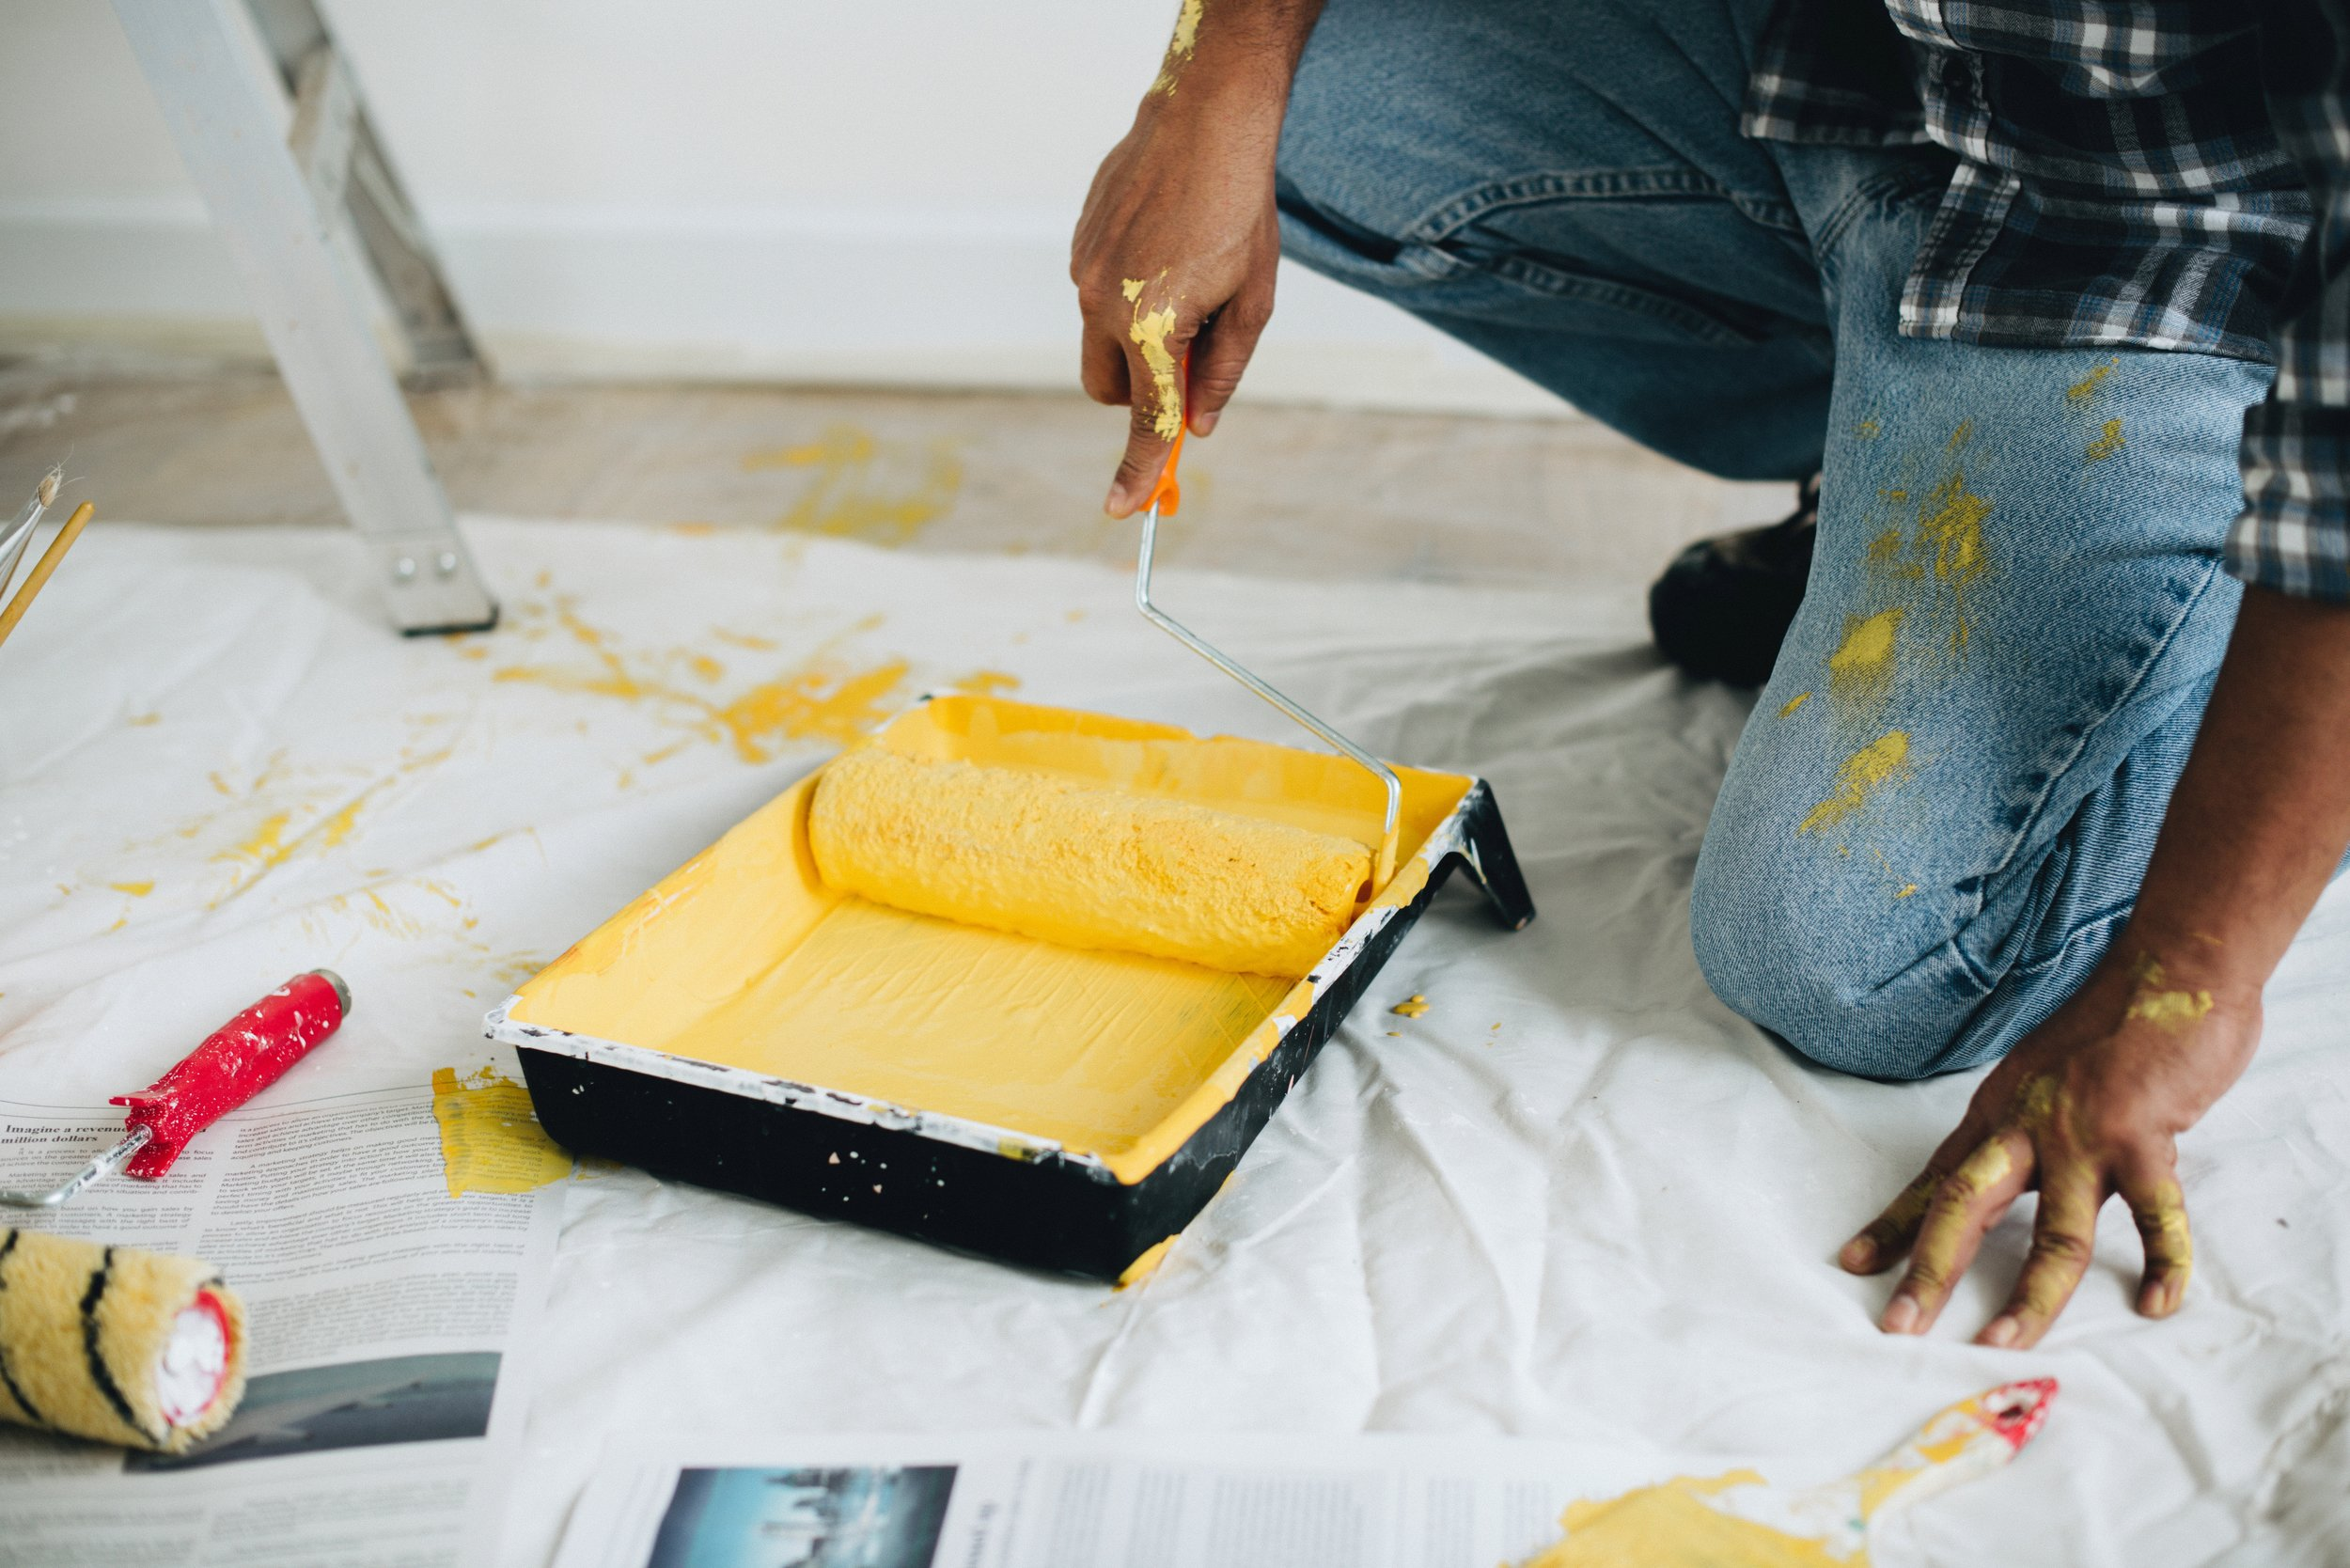 Get a free estimate - What can we help you with?Let us know, and we'll get our hands dirty and your walls painted in no time.